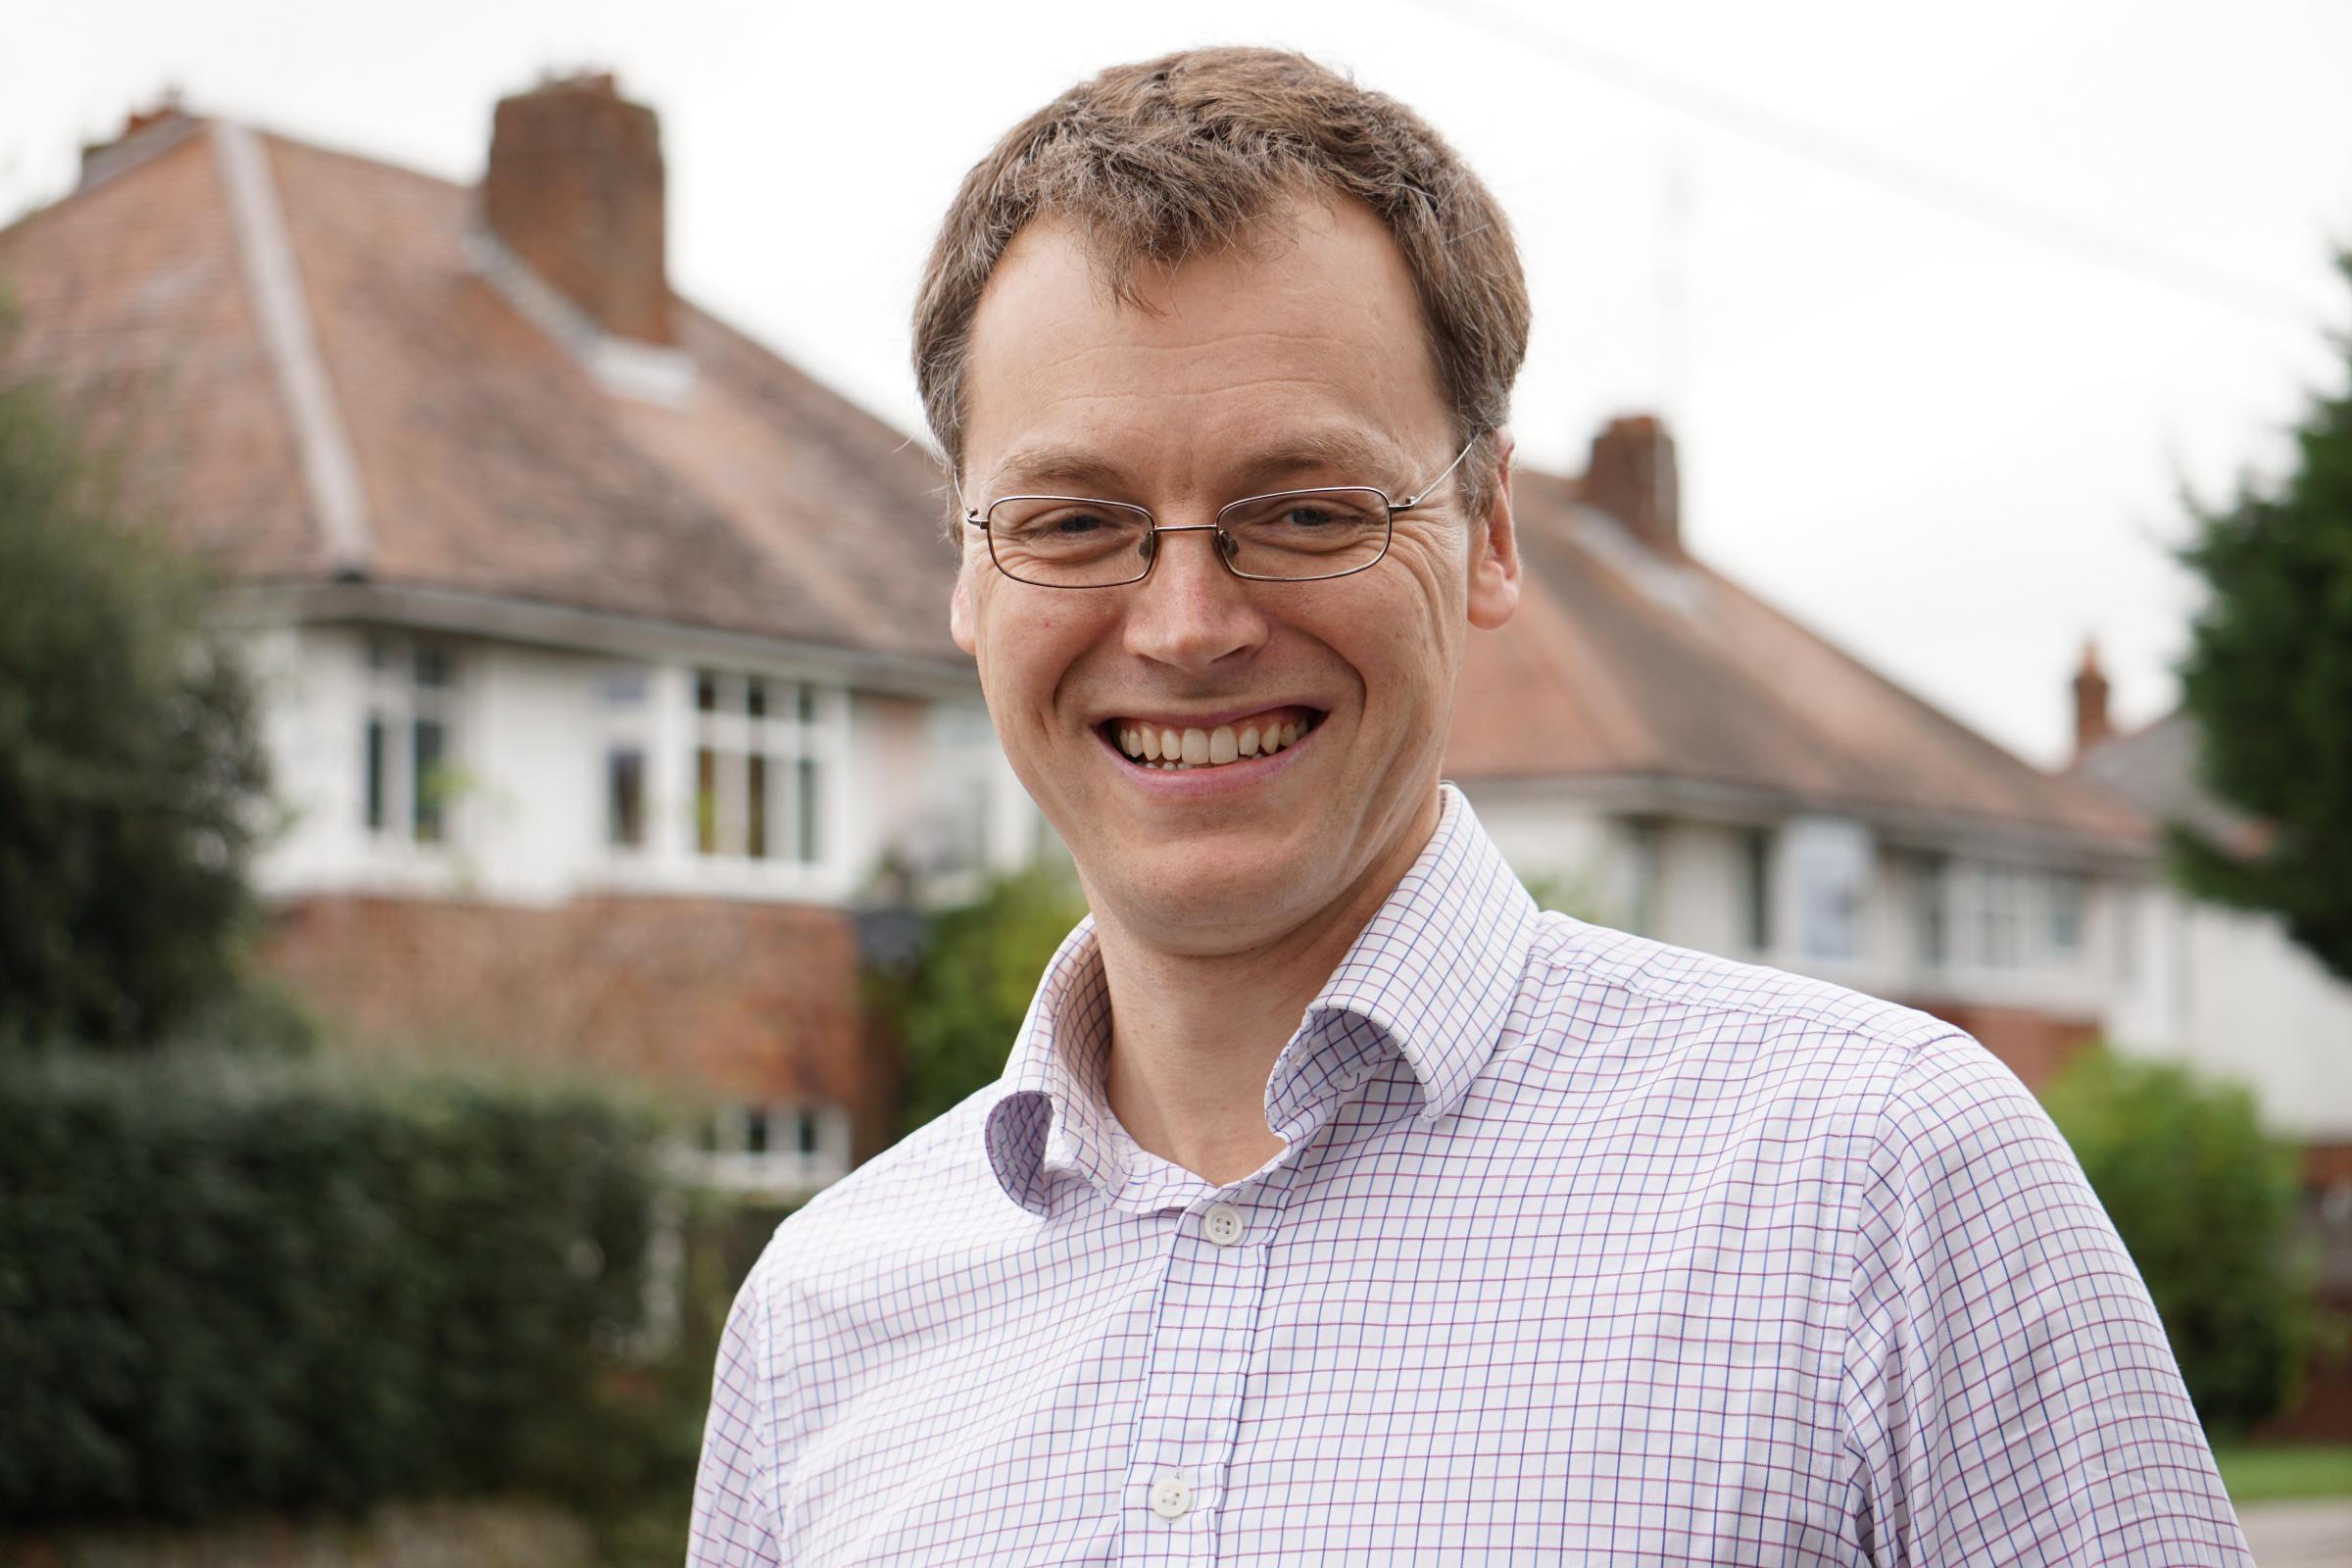 Michael Tomlinson, MP for Mid Dorset and North Poole